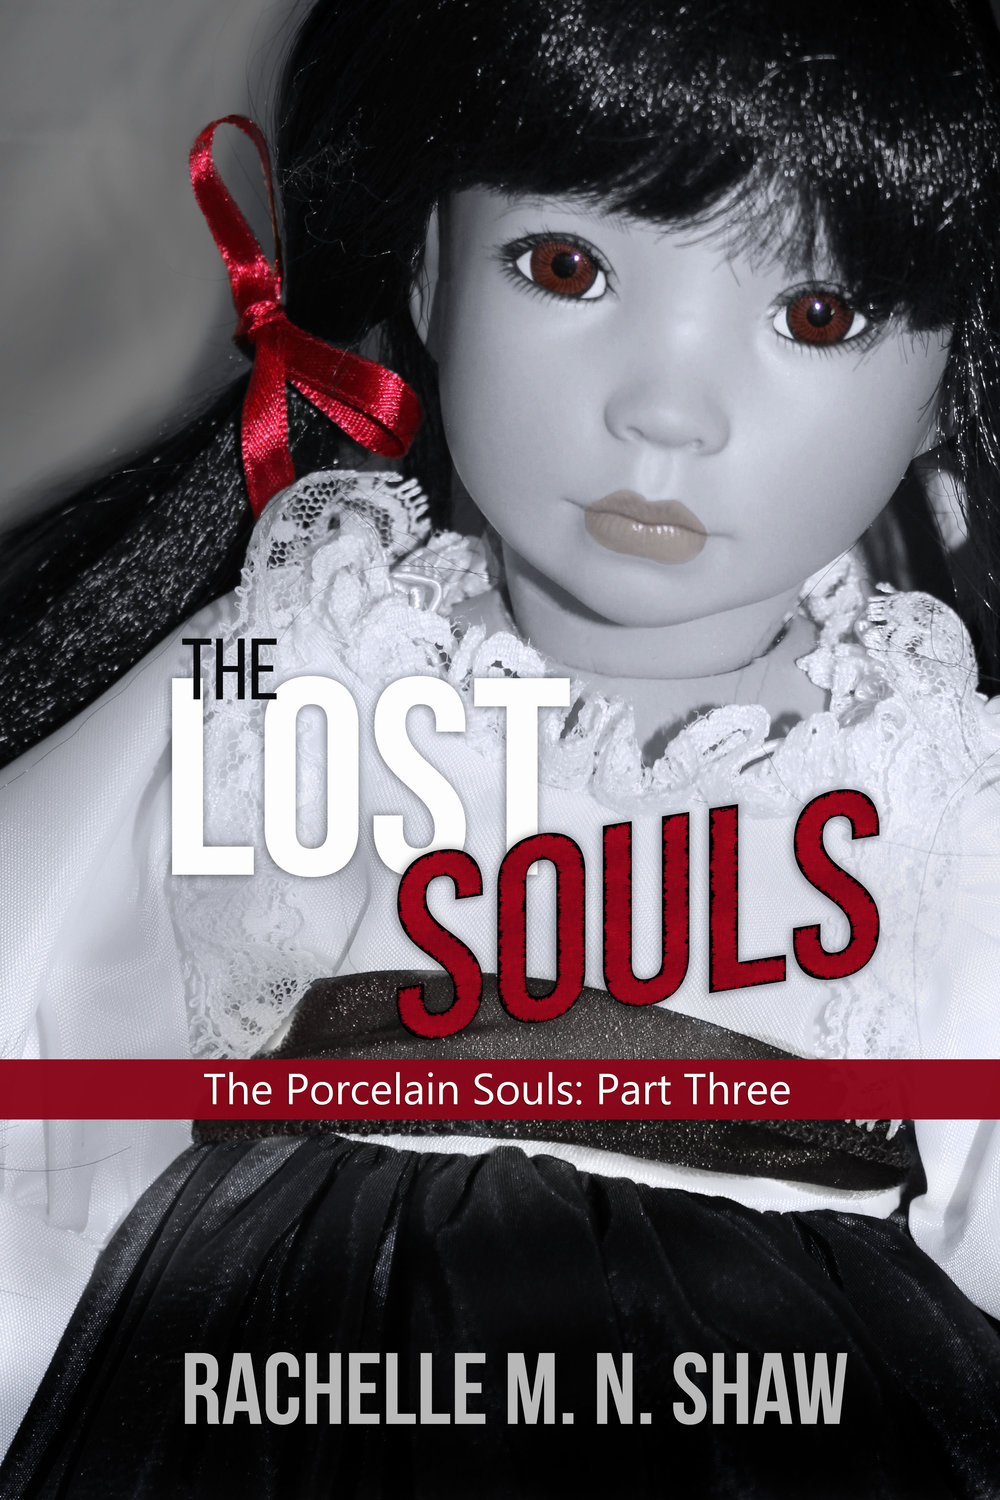 thelostsoulsfinalcover5f.jpg